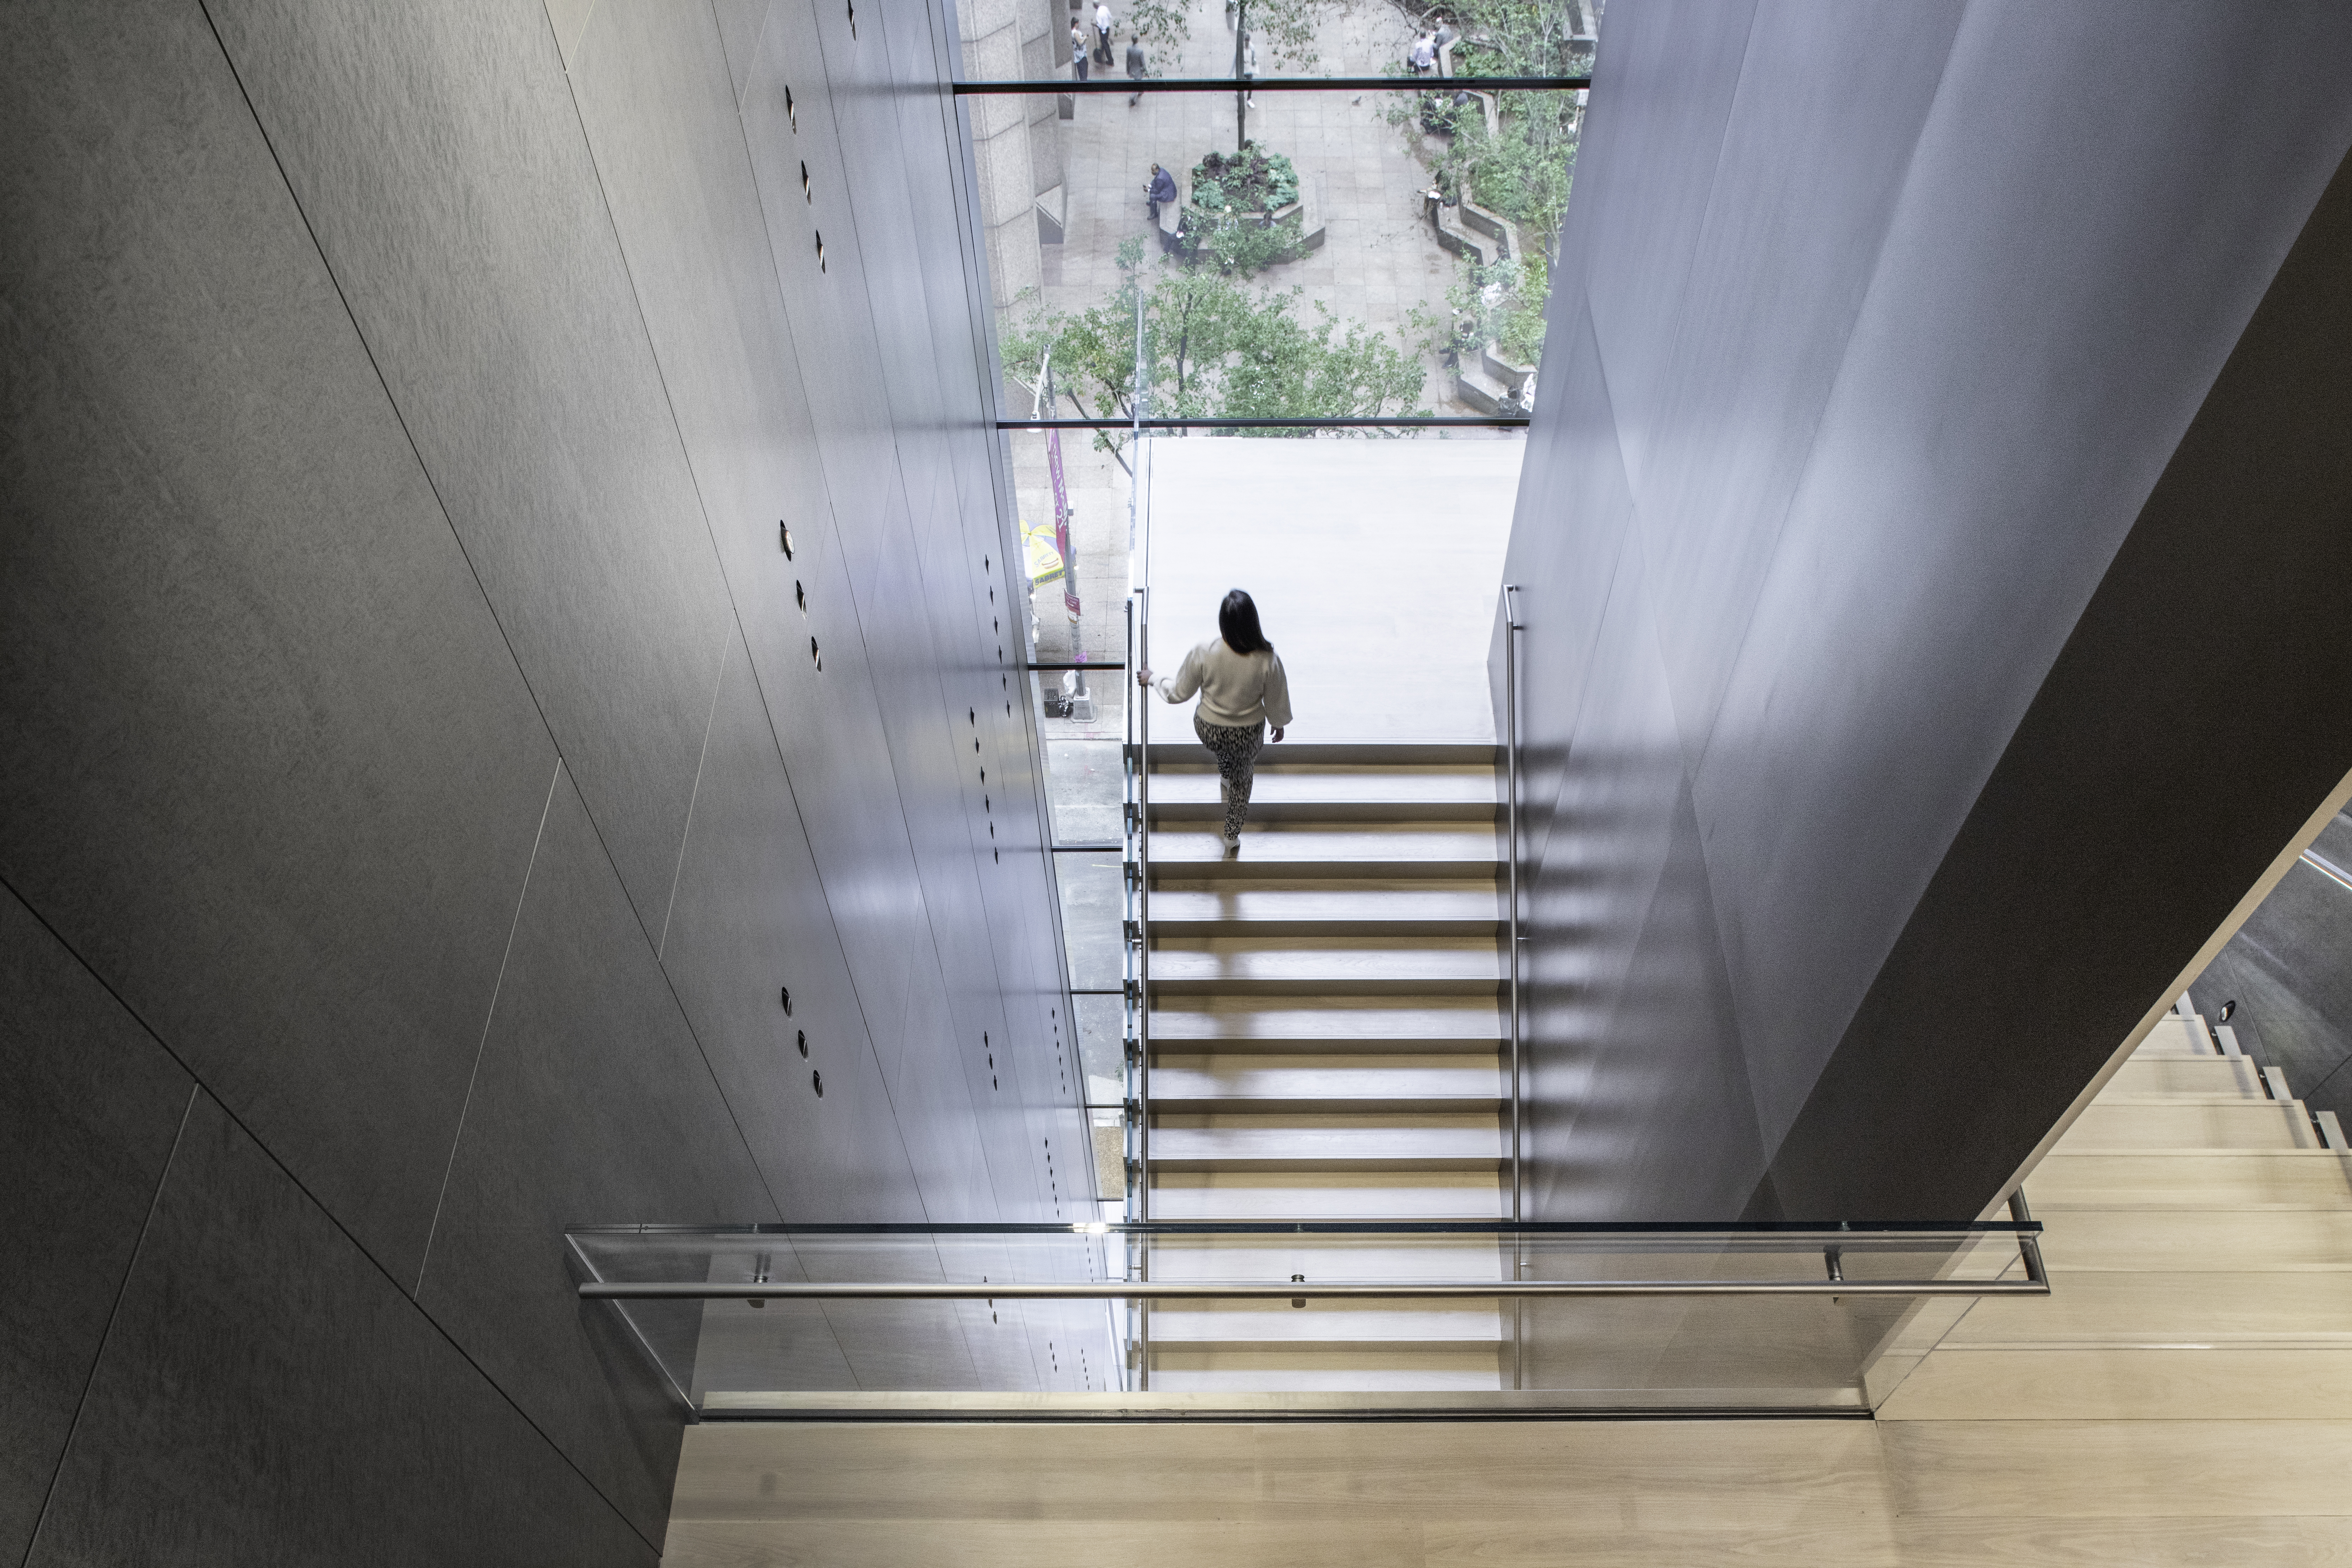 <p>MoMa Fase 2. Blade Stair, View from Level 6 Beeld Brett Beyer. Courtesey of Diller Scofidio + Renfro</p>